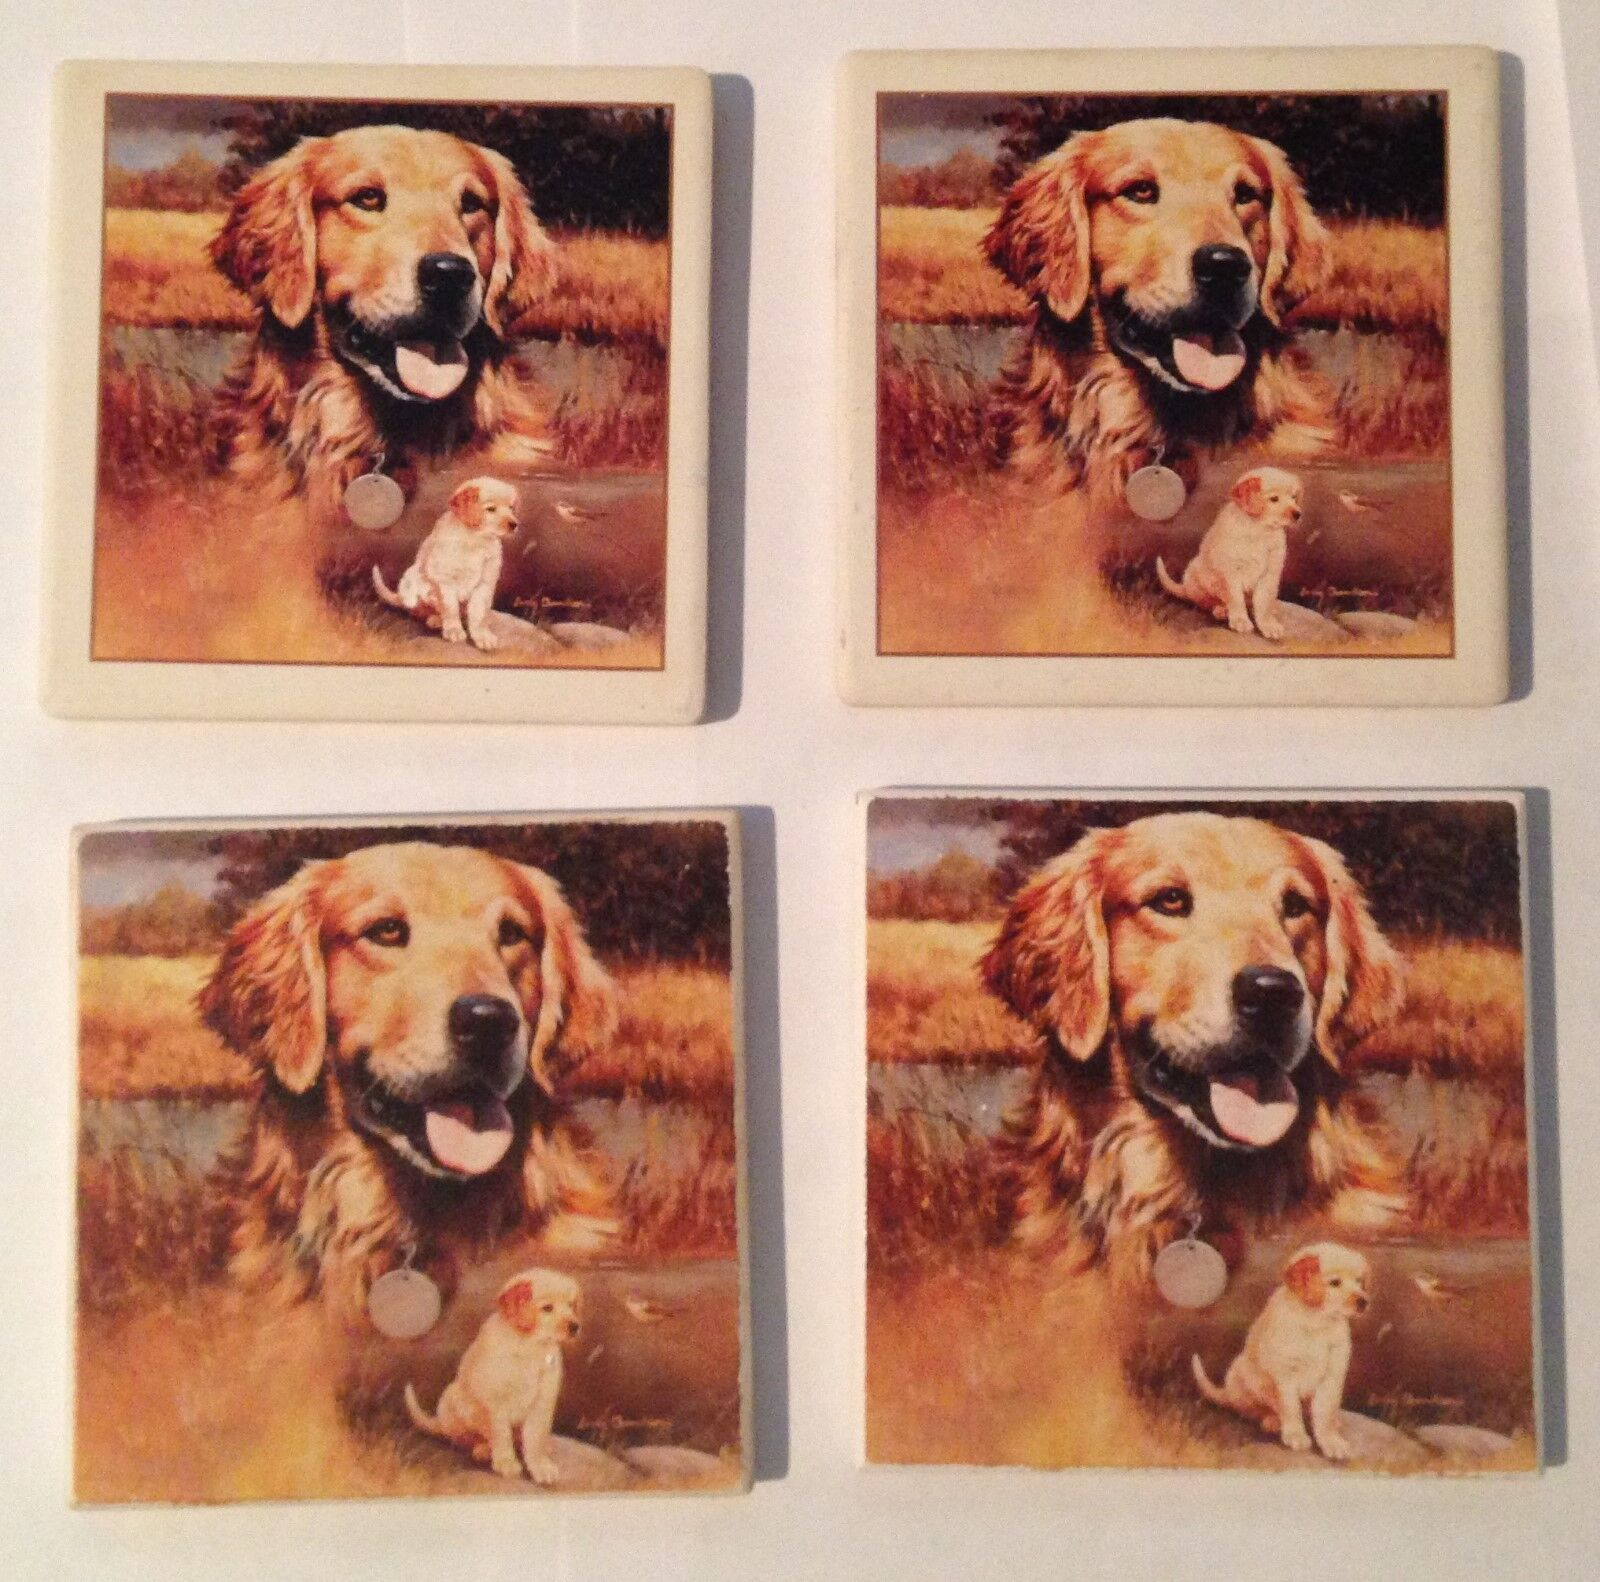 GOLDEN RETRIEVER SET OF 5 CERAMIC COASTERS WITH CORK BACK - 4 X 4 INCHES